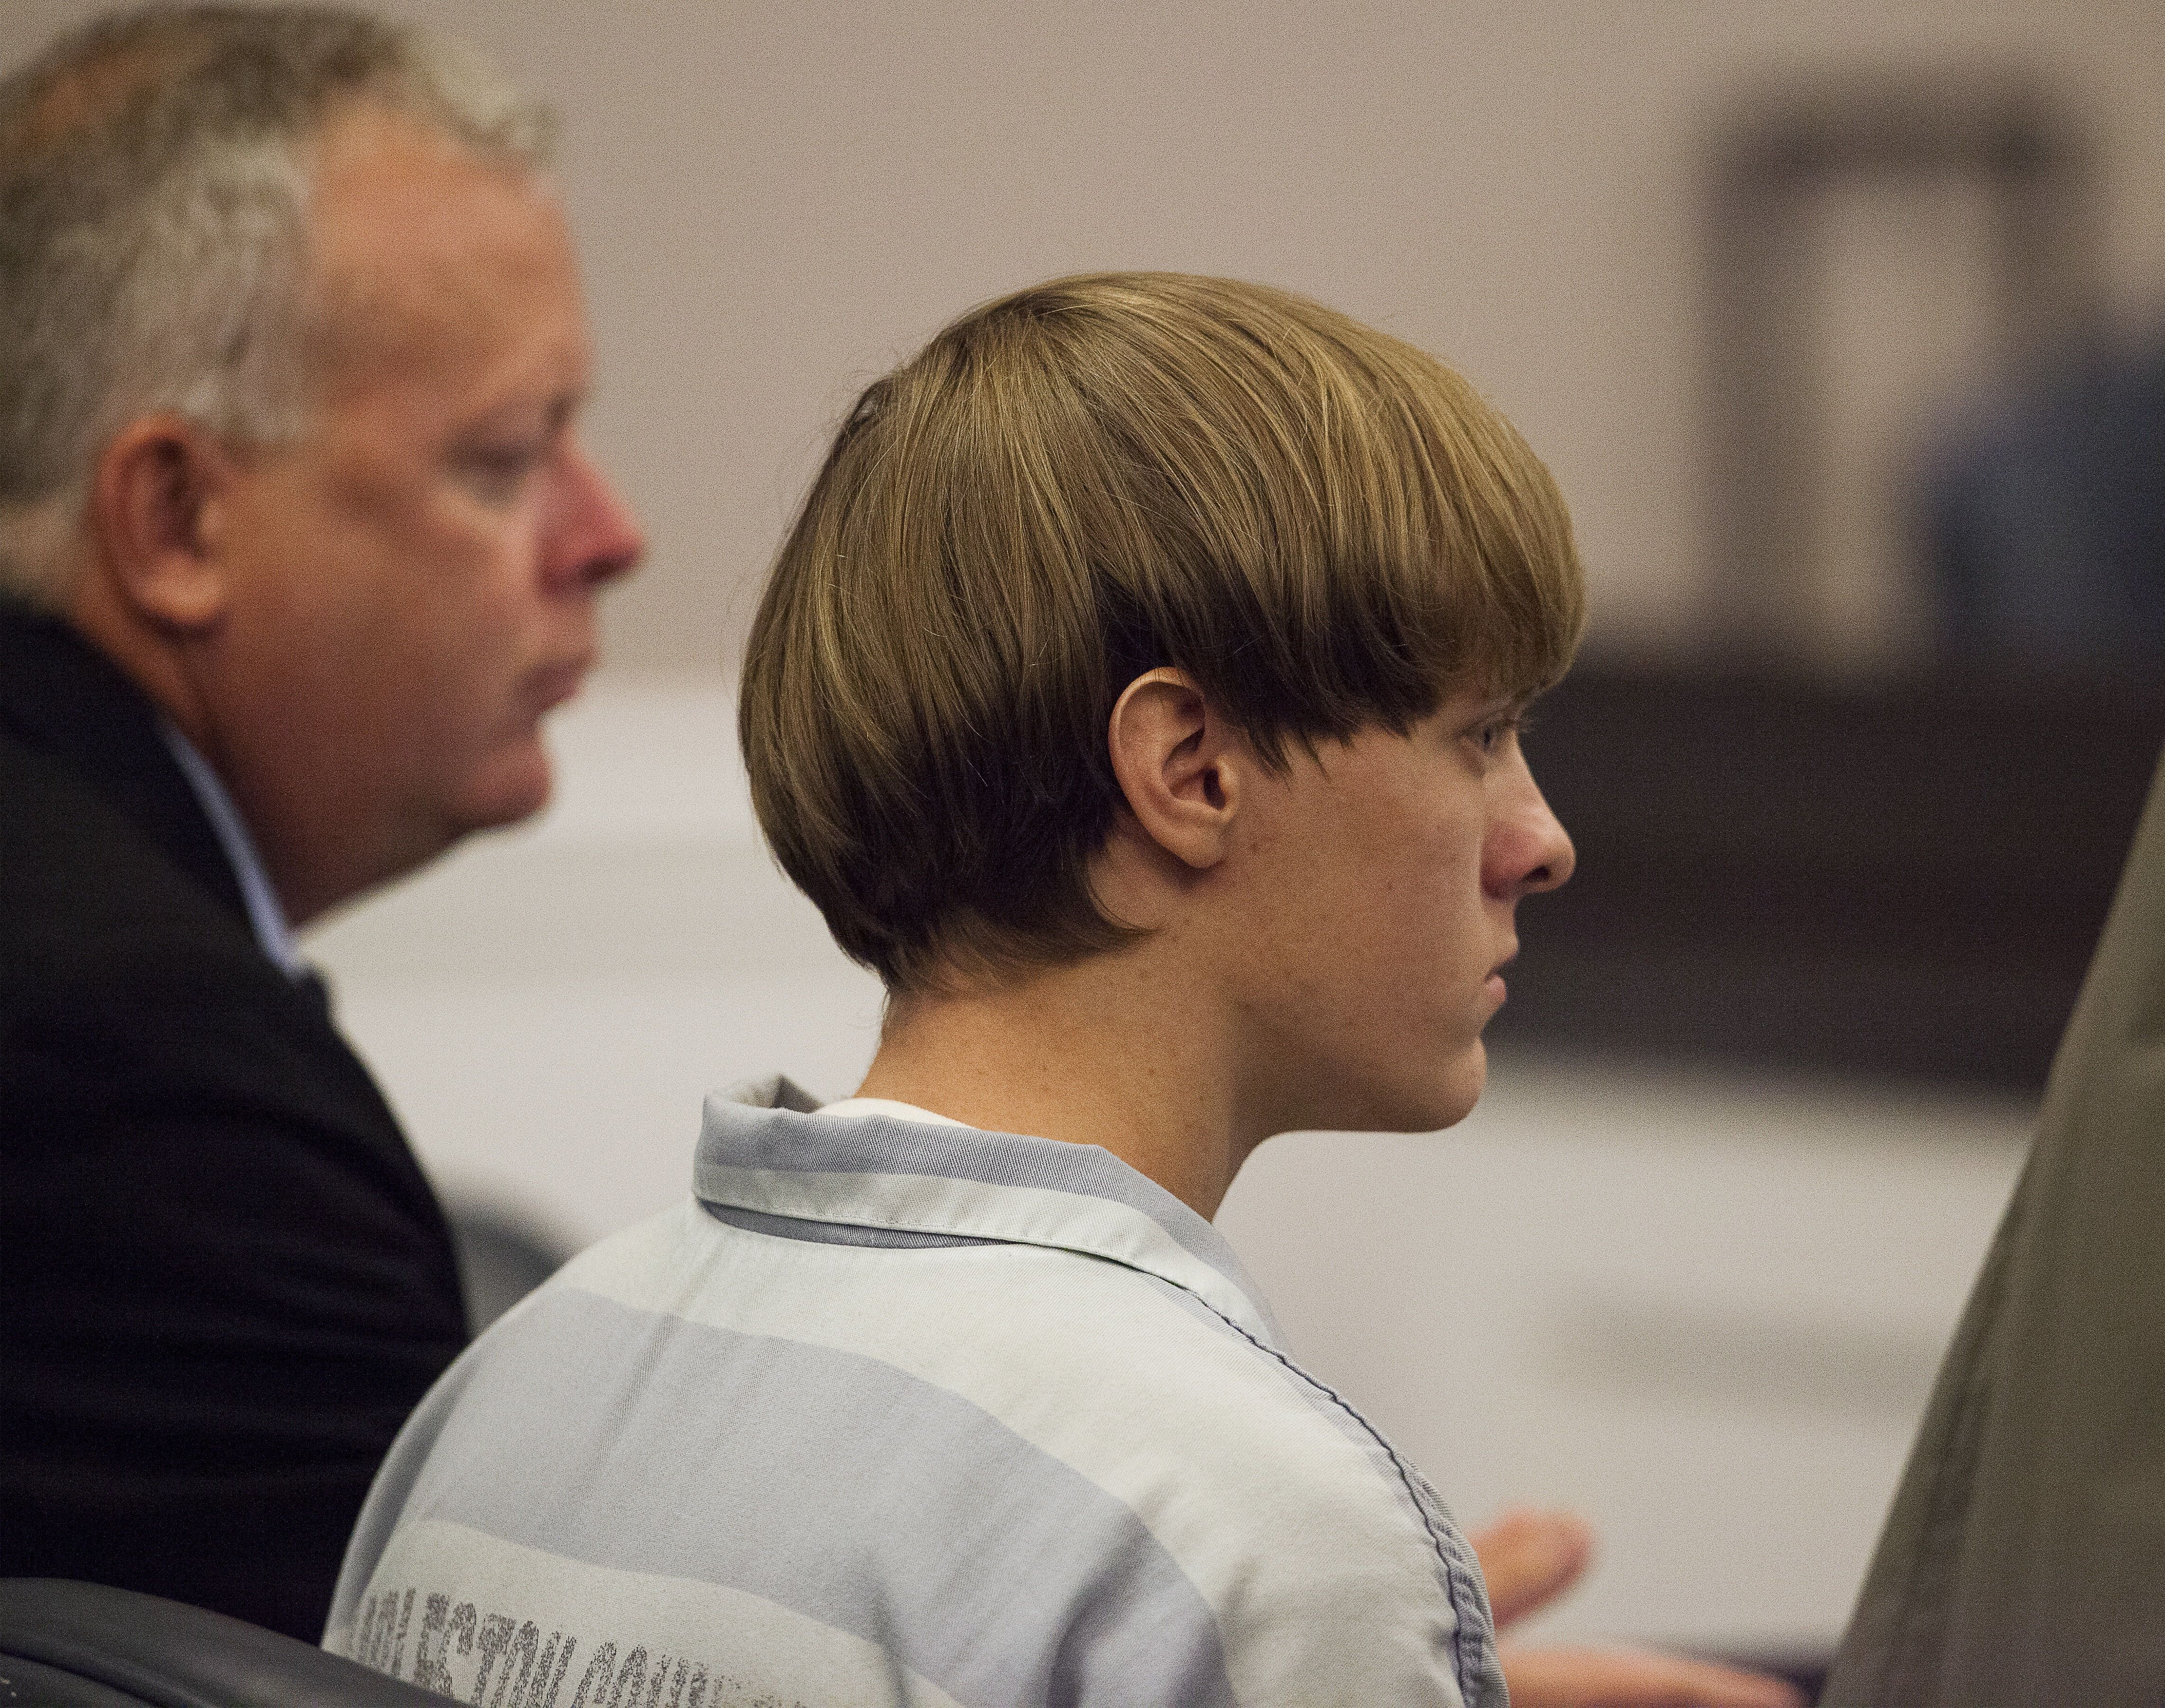 Dylann Roof (R), the 21-year-old man charged with murdering nine worshippers at a historic black church in Charleston last month, listens to the proceedings with assistant defense attorney William Maguire during a hearing at the Judicial Center in Charleston, South Carolina July 16, 2015.   REUTERS/Randall Hill/Files